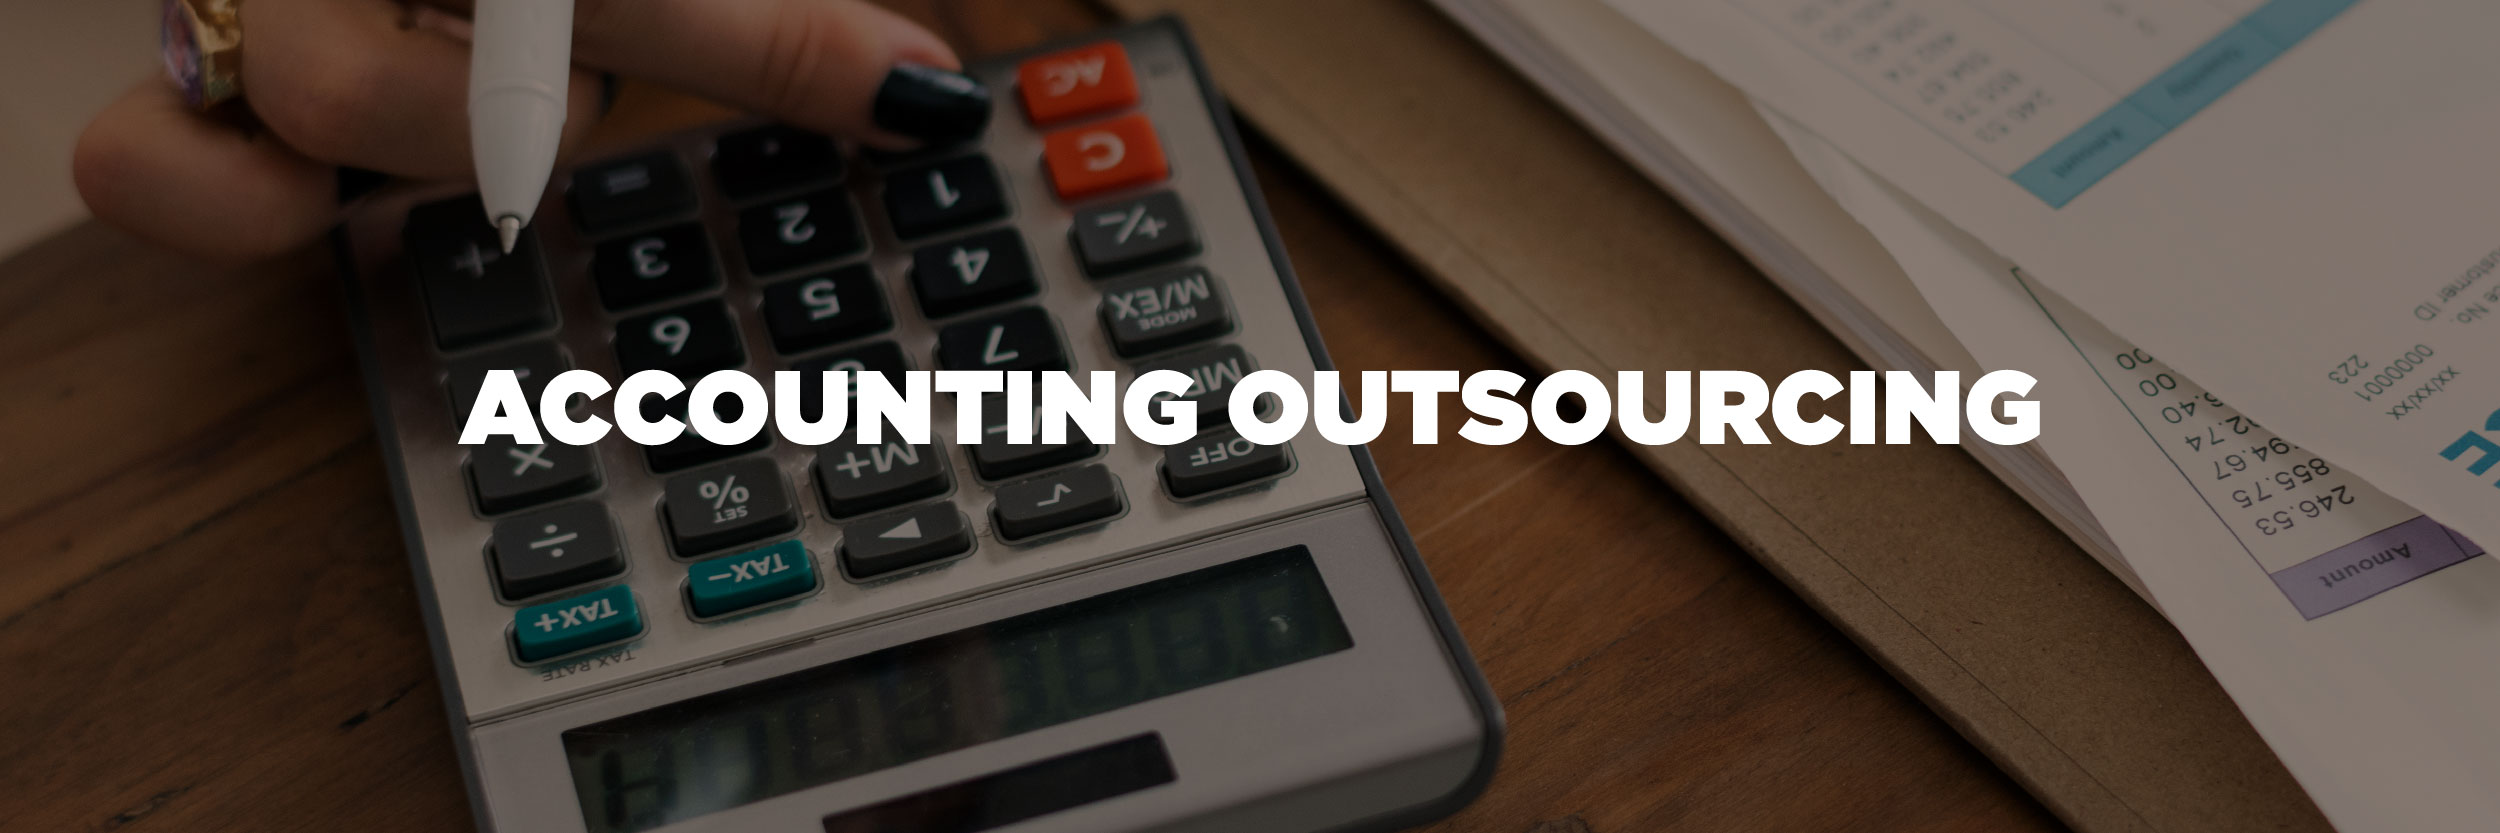 Accounting outsourcing 123